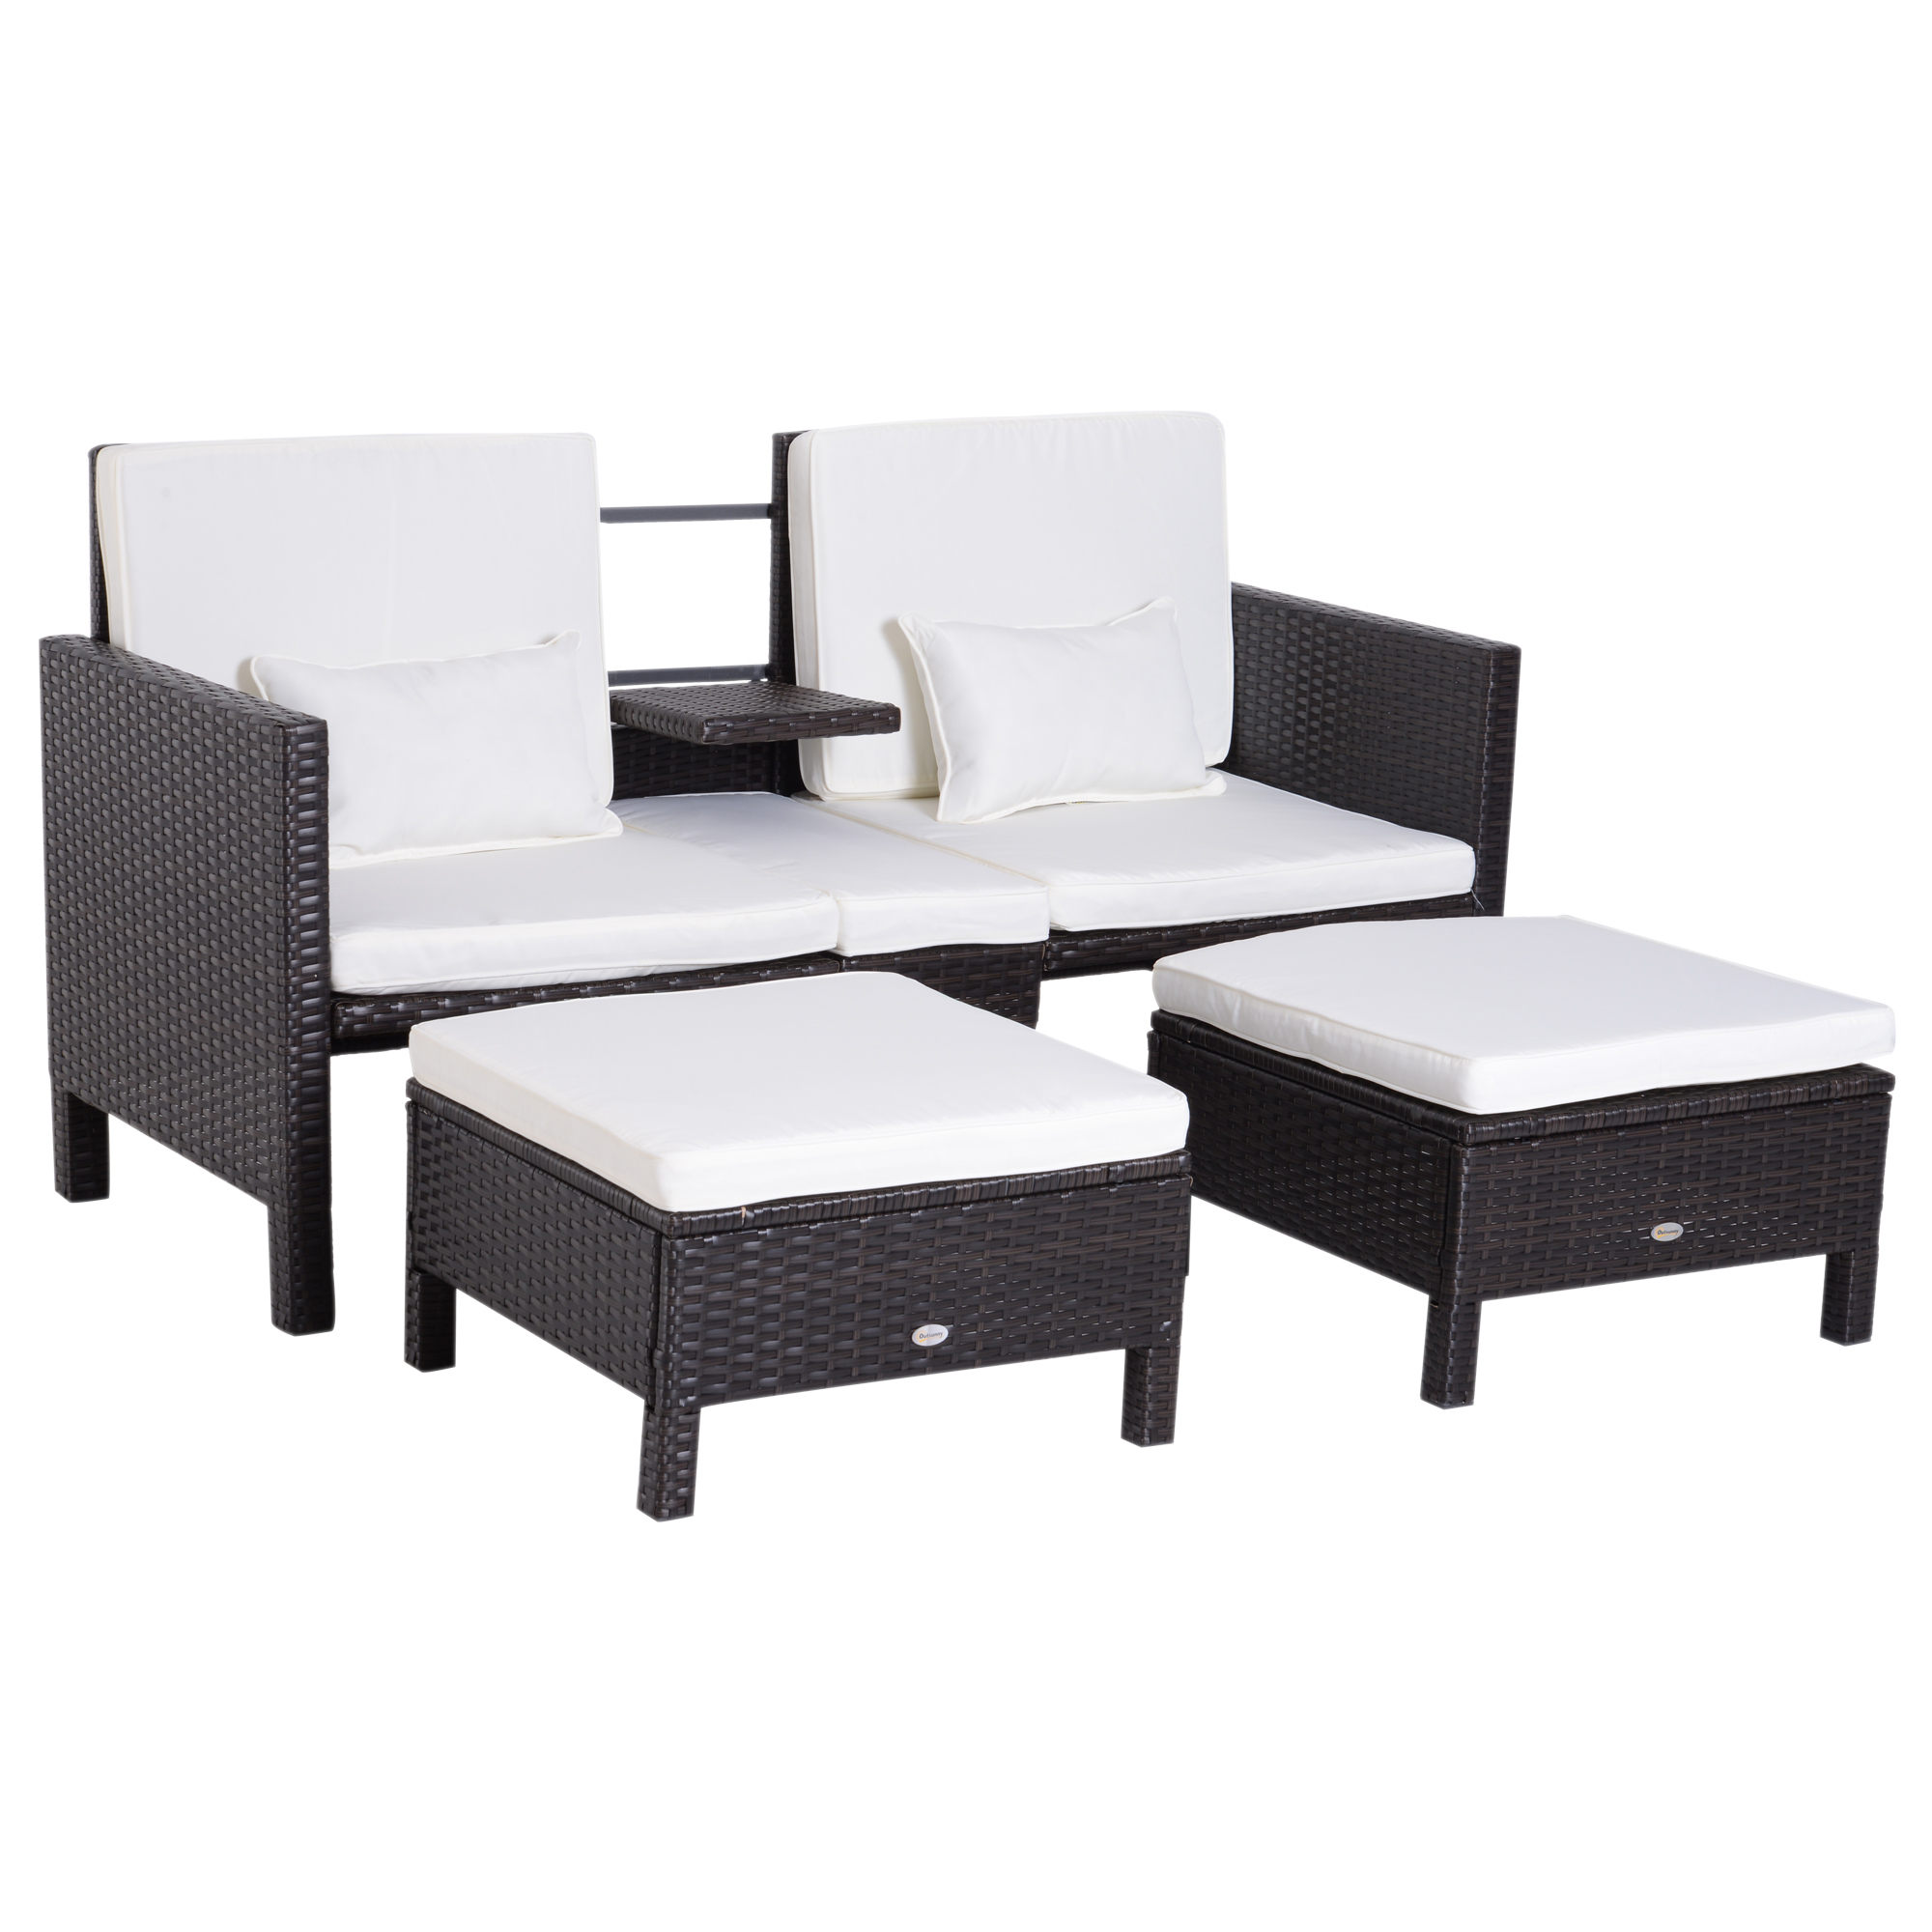 Outsunny Set Garden Furniture Rattan Loveseat And 2 Ottoman With Armrest And Upholstered Cushions Black, Cream